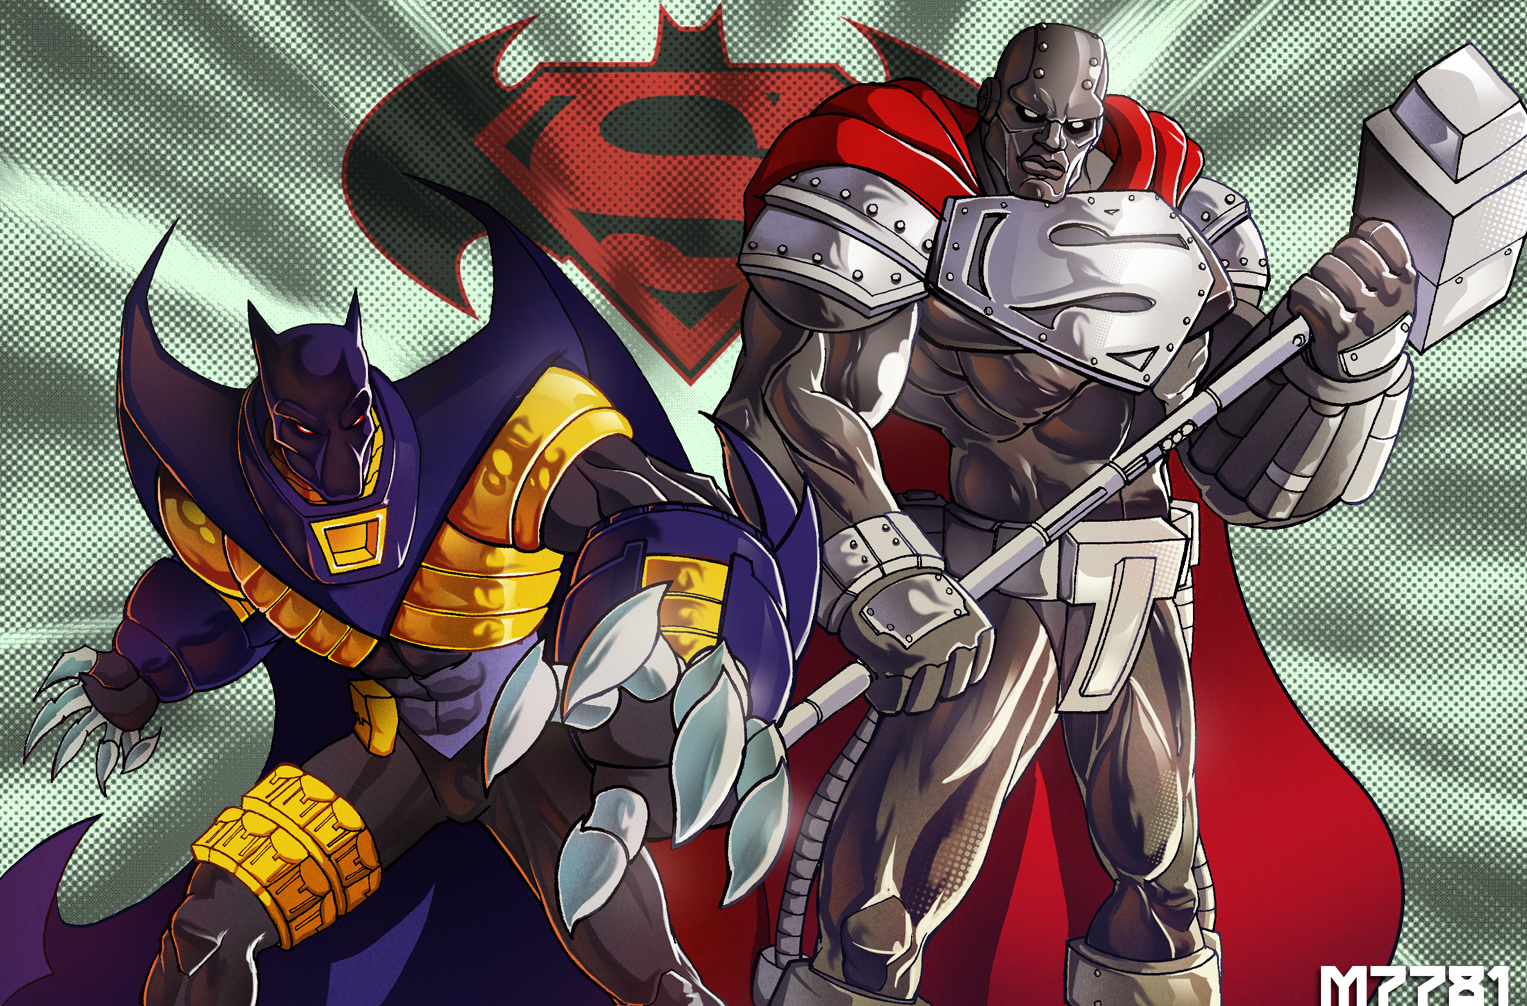 90's Superman and Batman by m7781